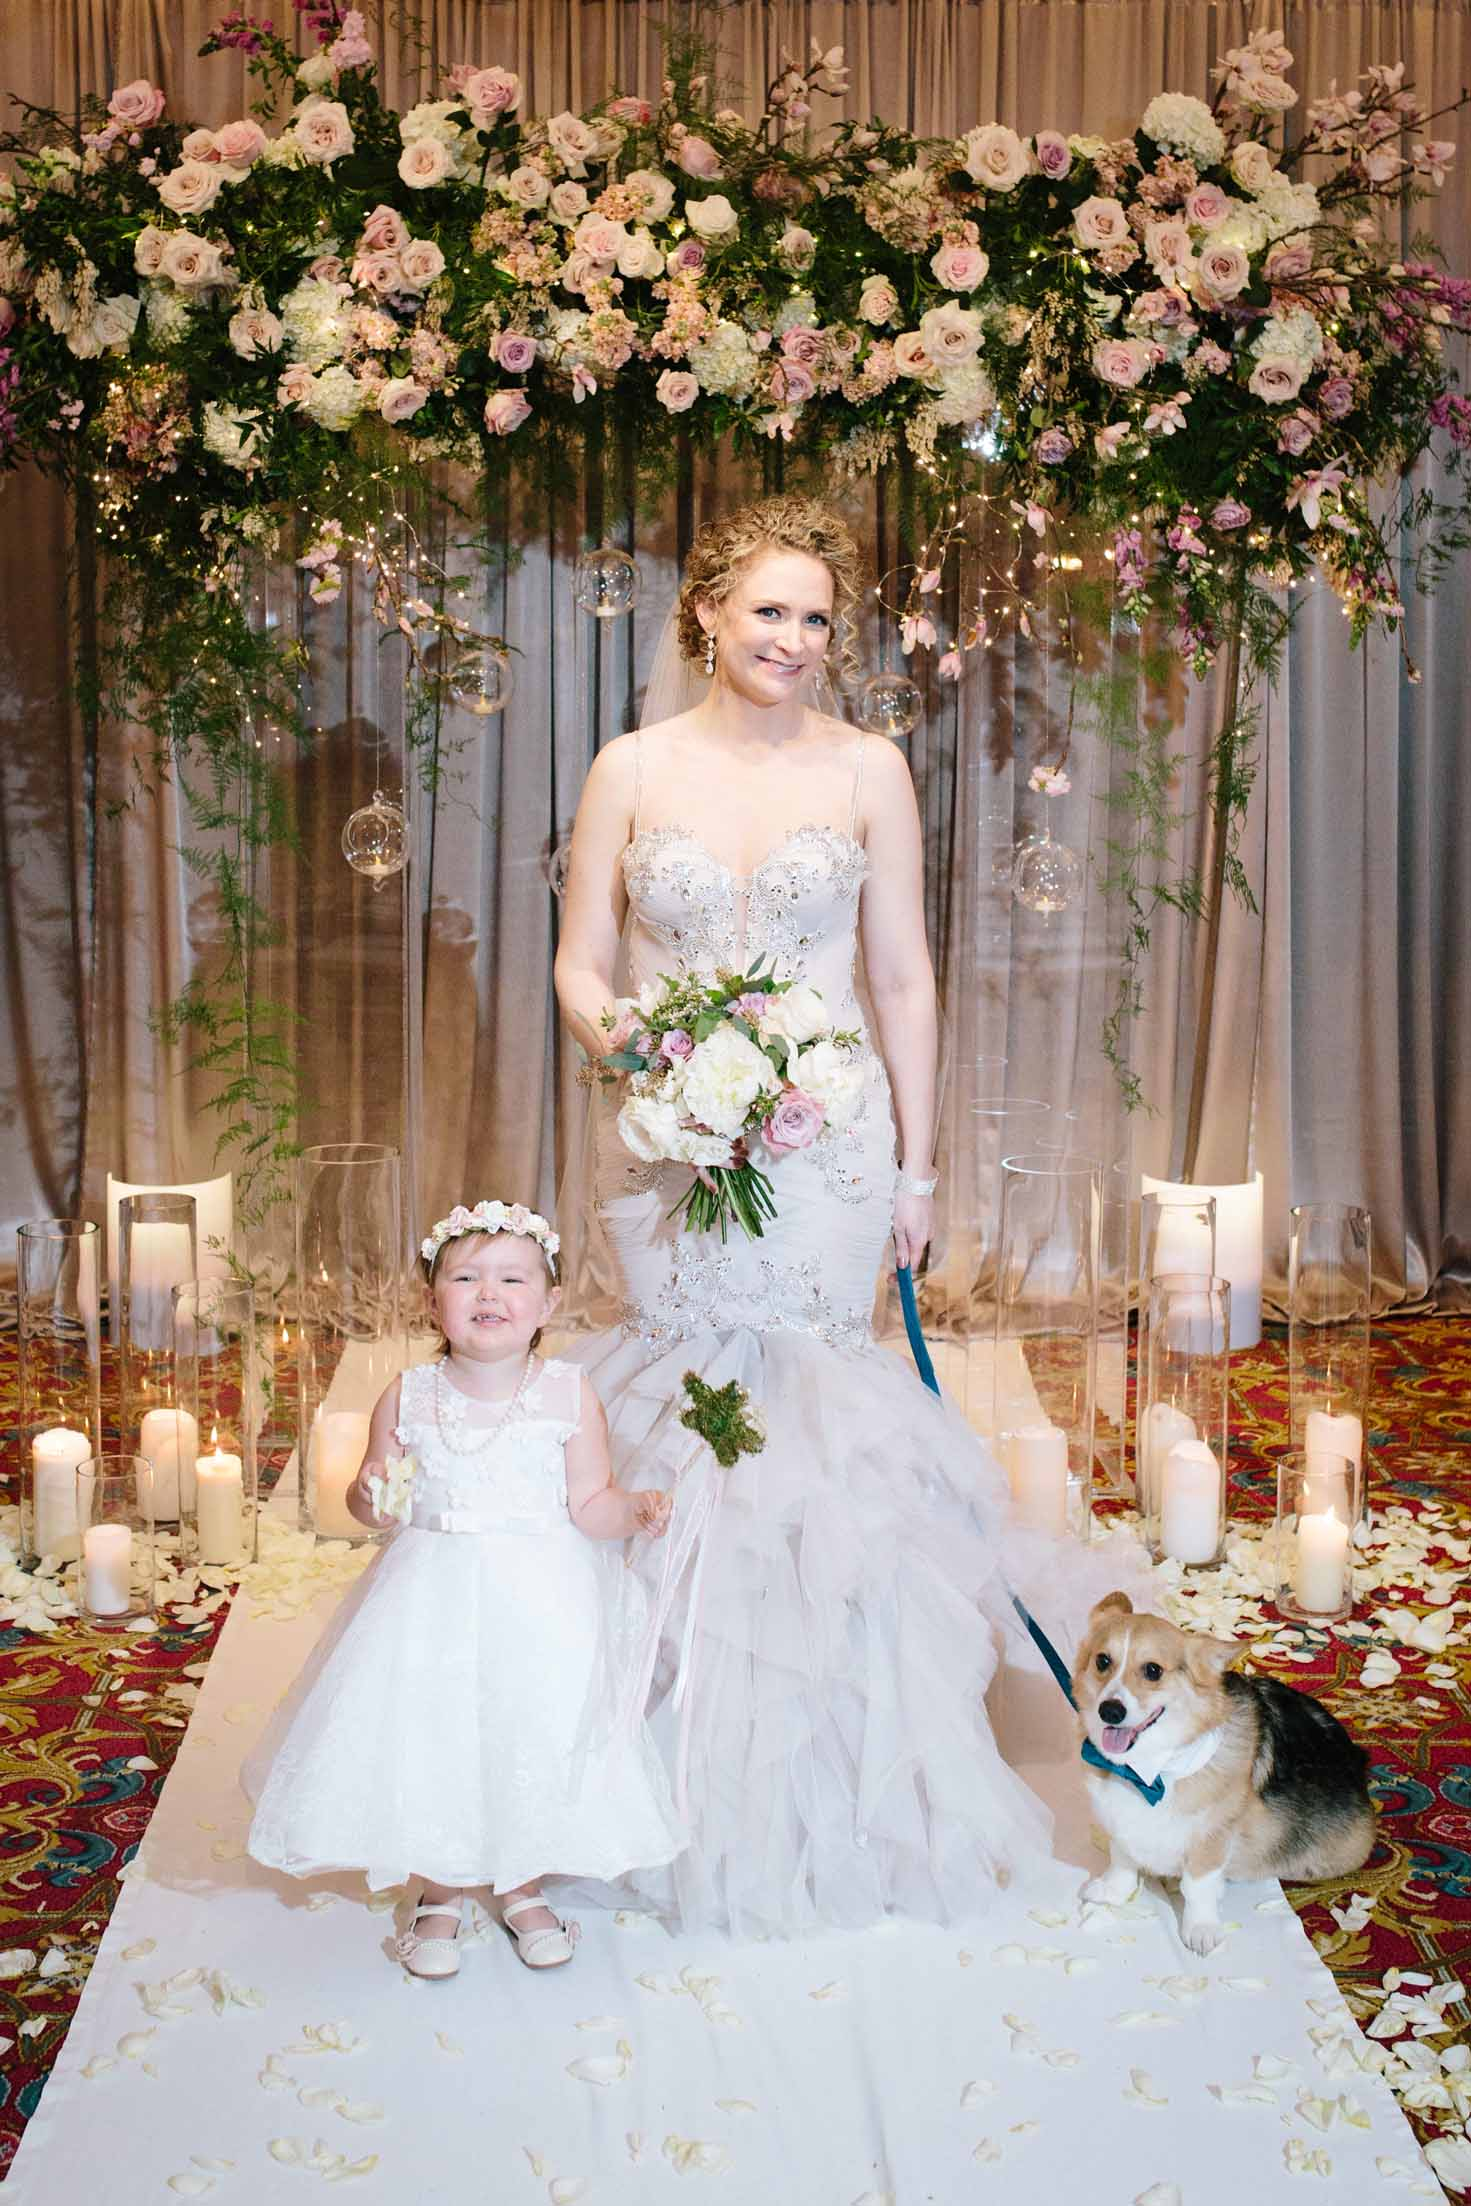 Bride standing with flower girl and dog in front of lush floral spring garden ceremony arch surrounded by candles